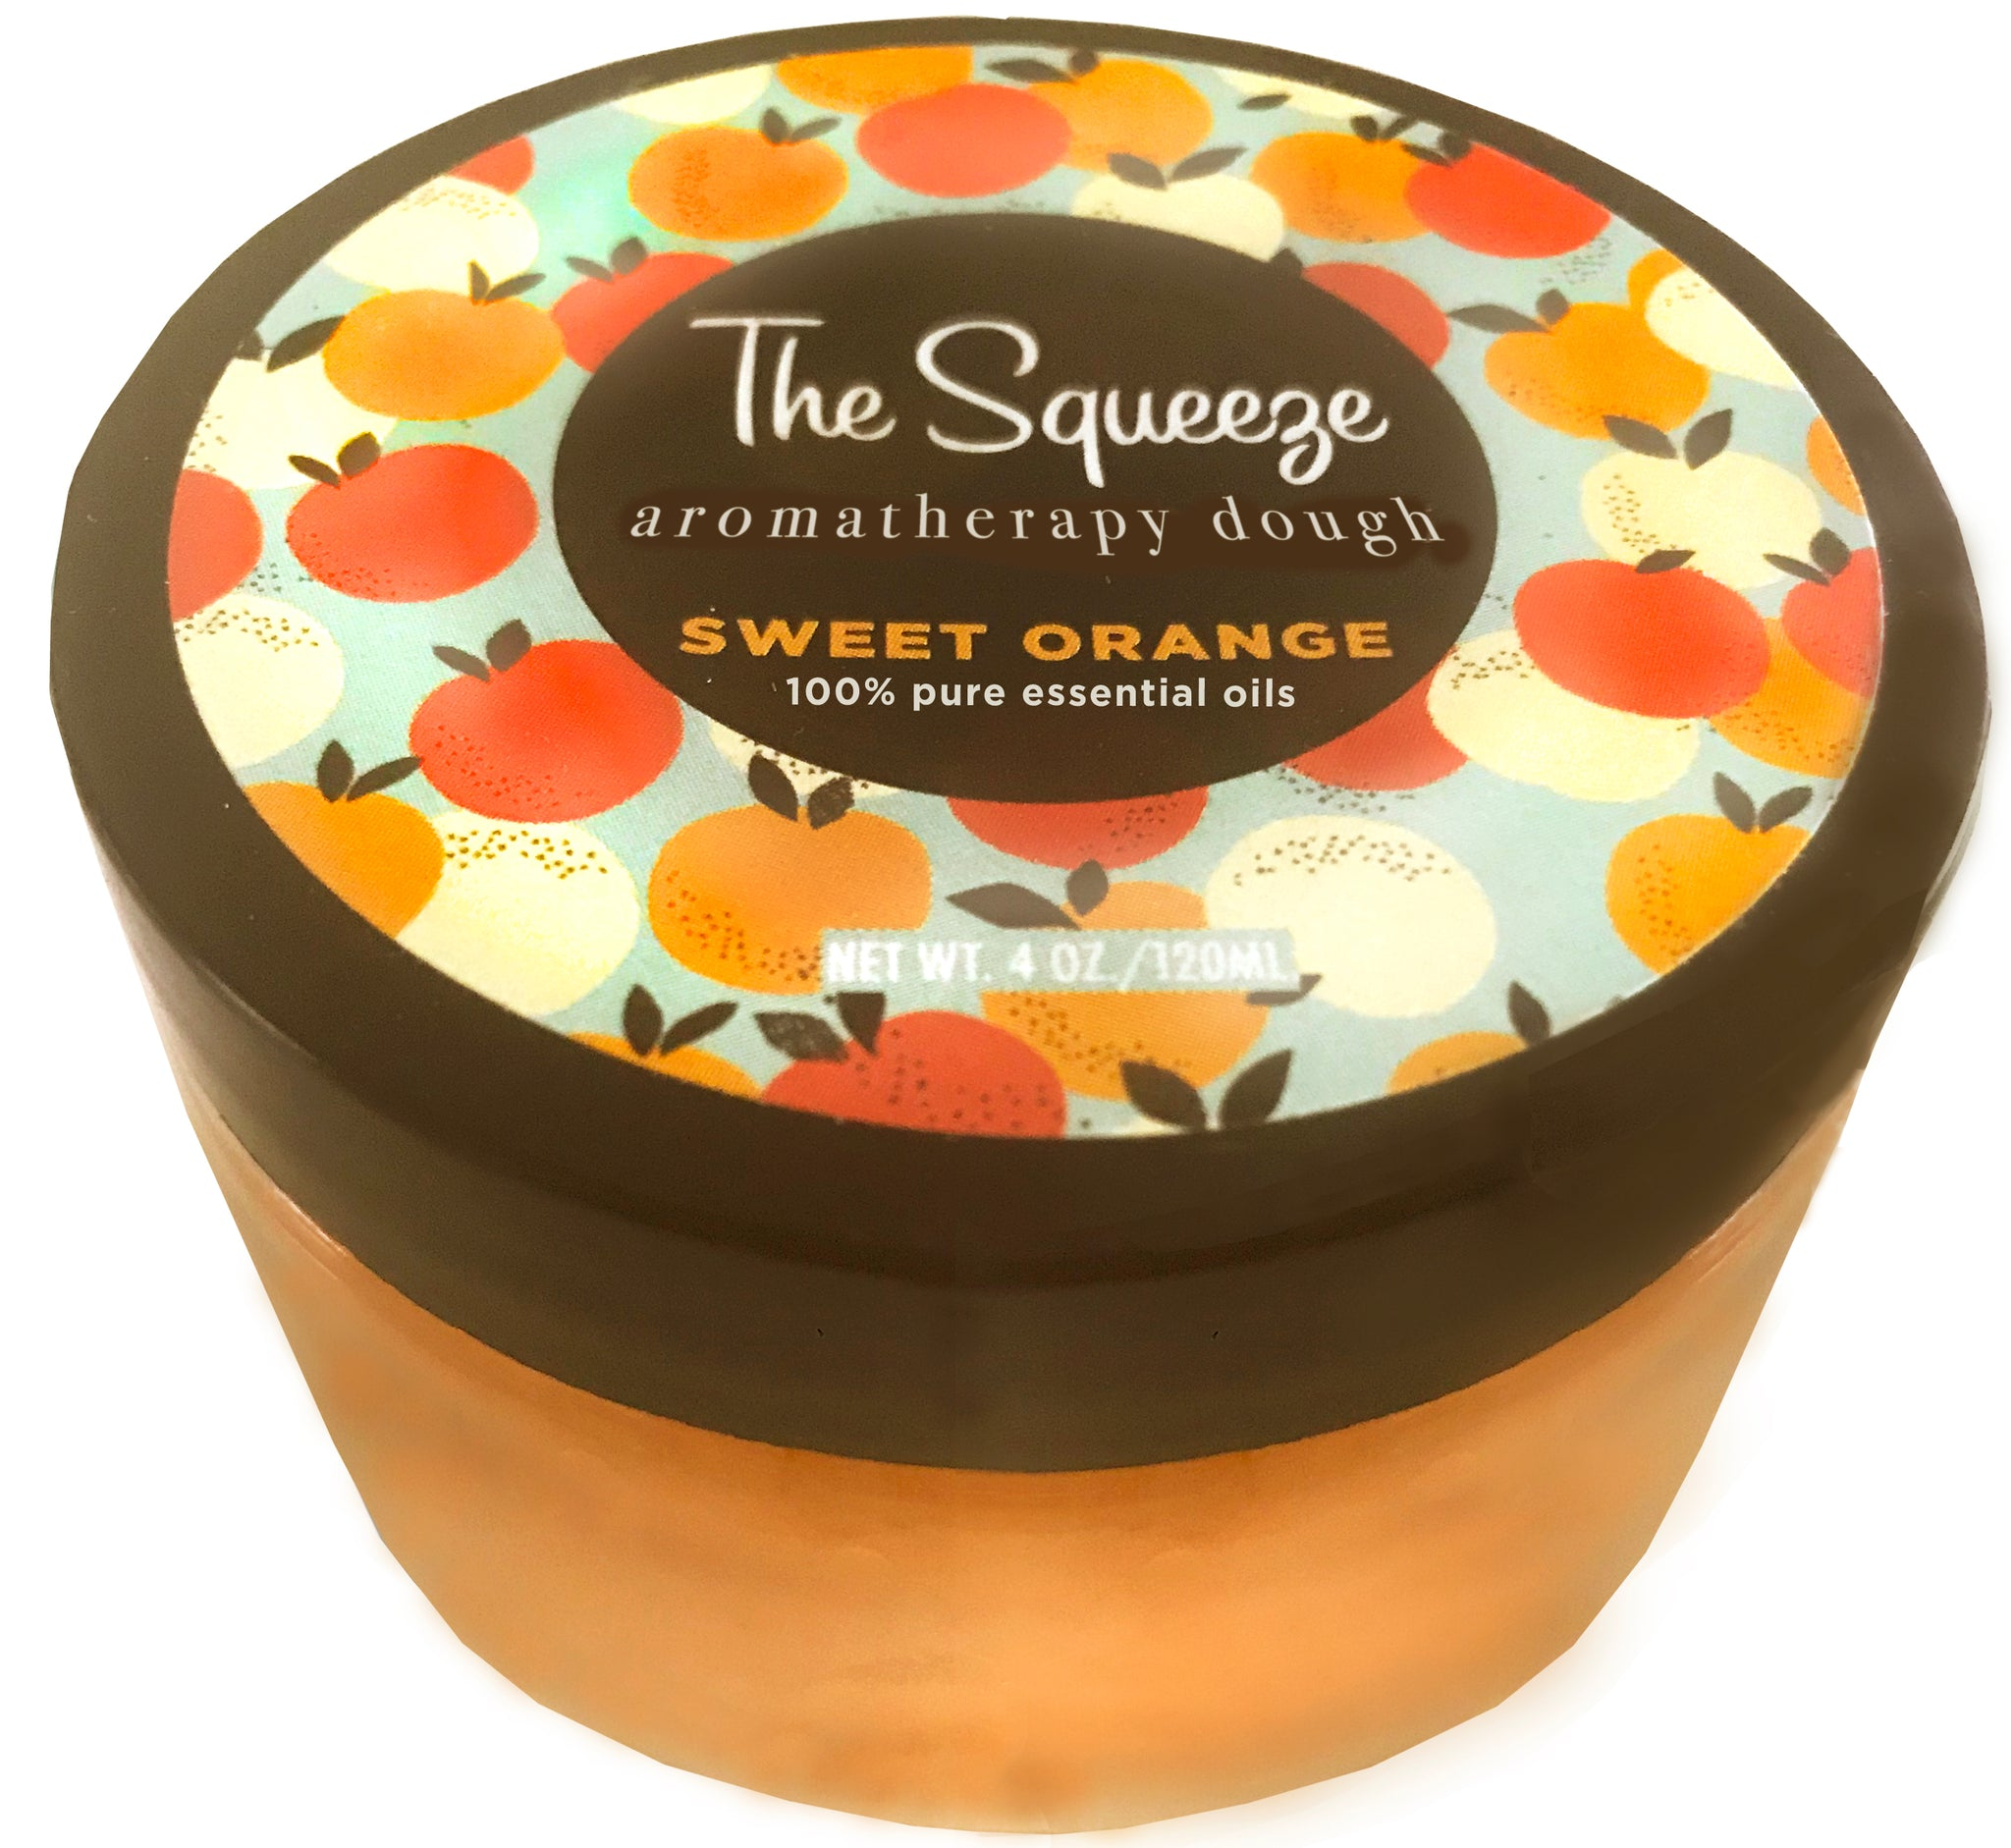 The Squeeze - Sweet Orange 100% essential oil stress relief dough for self care, aromatherapy stress ball FREE SHIPPING